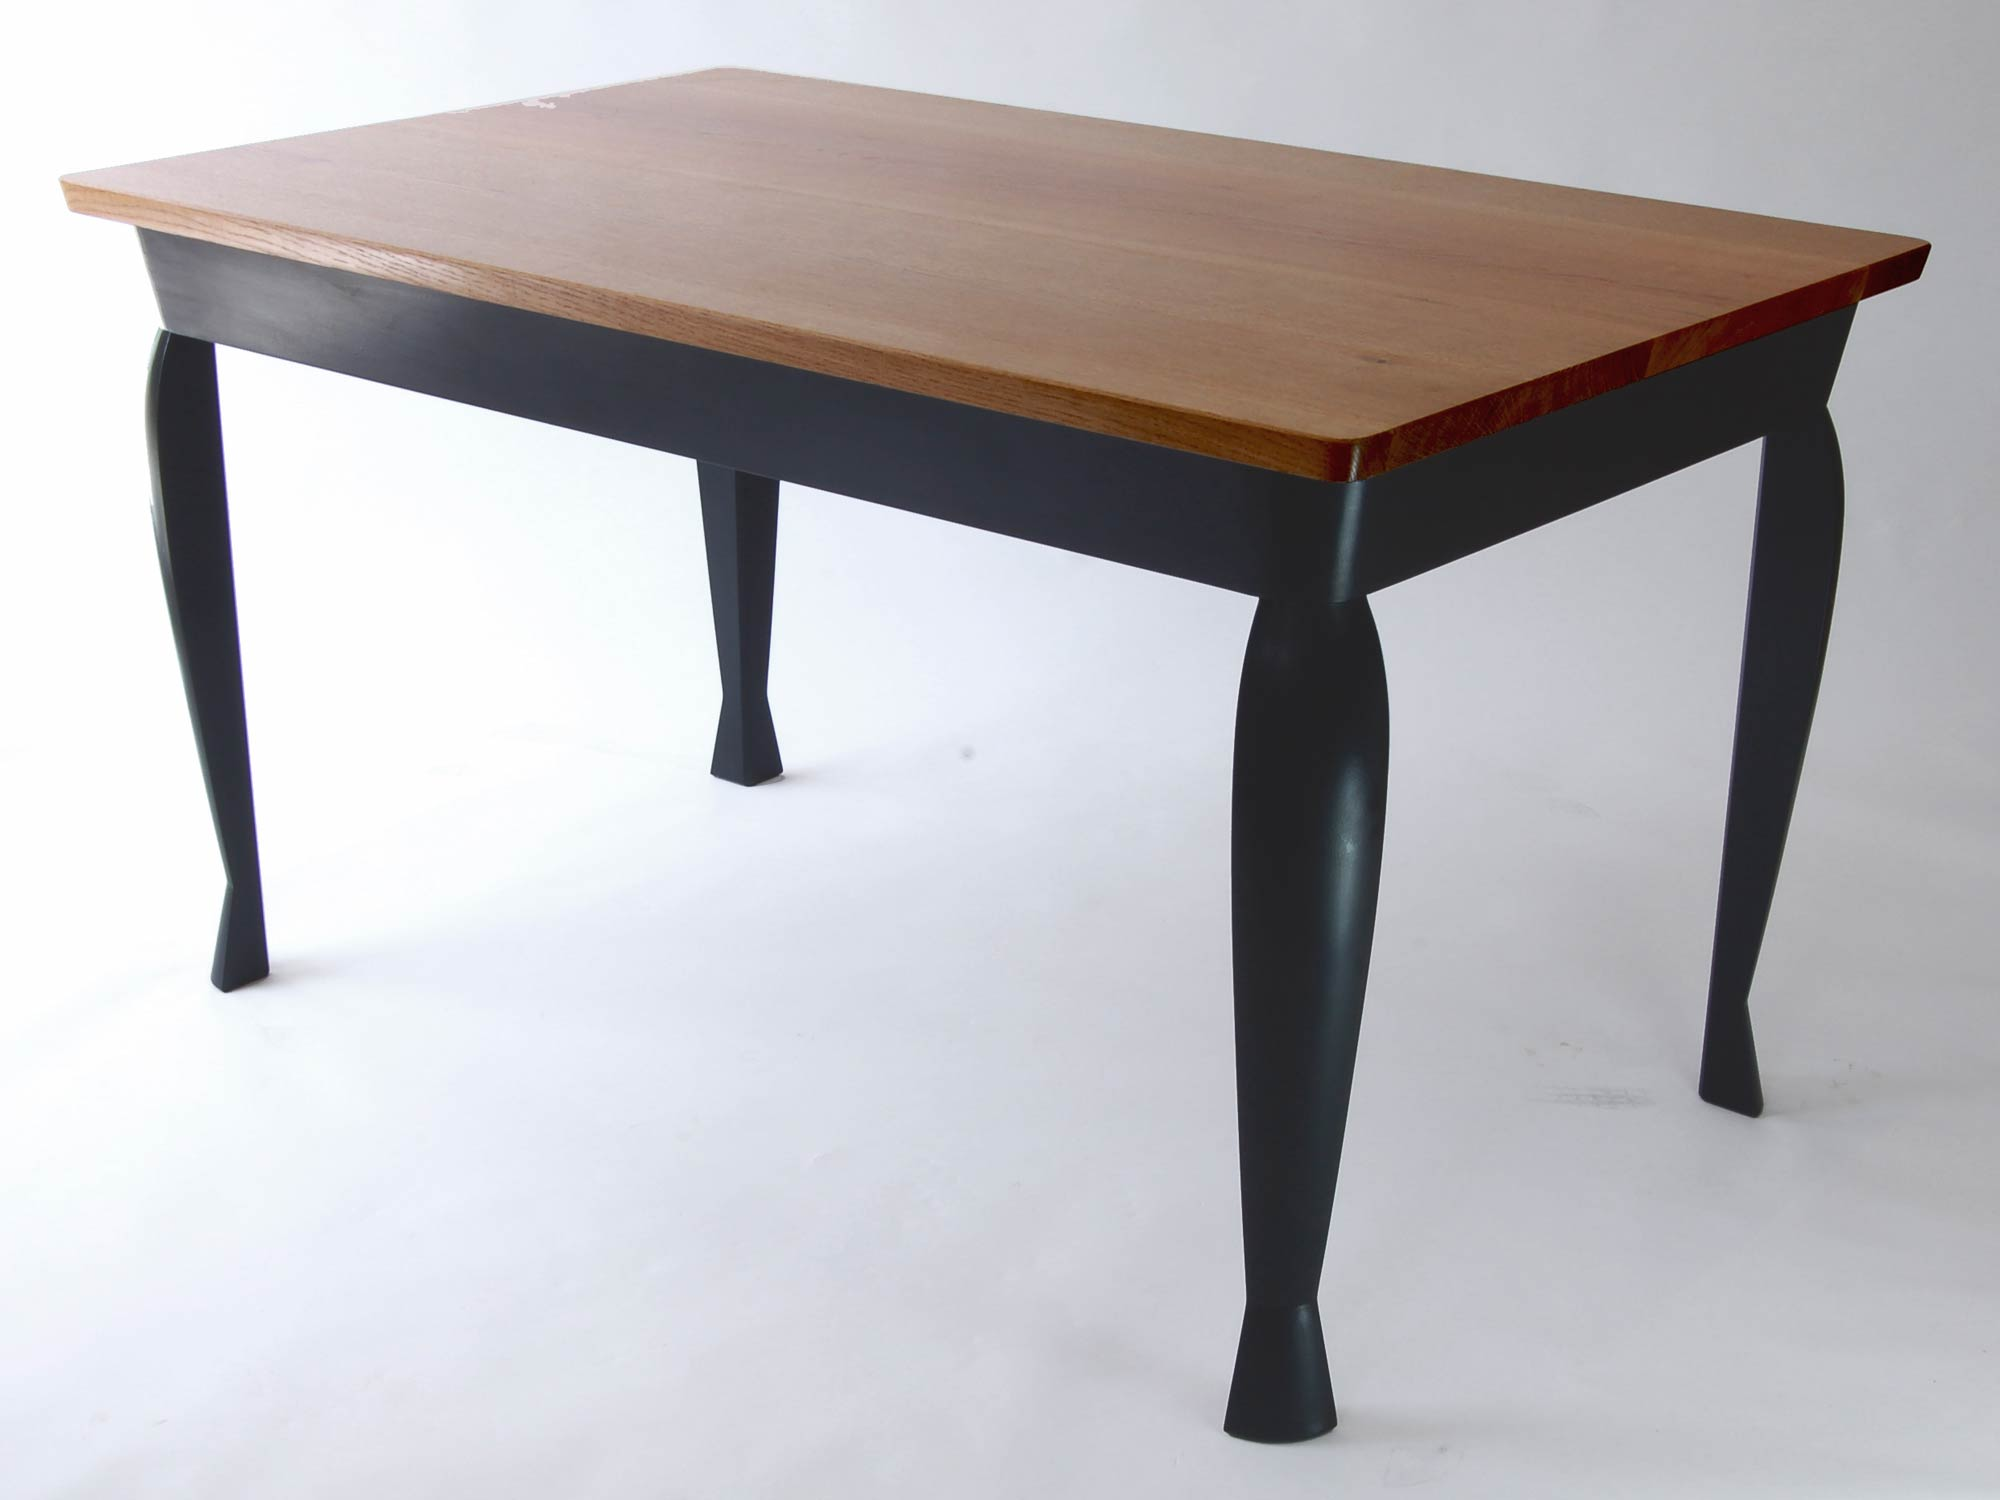 Top Wood Kitchen Table 2000 x 1500 · 76 kB · jpeg